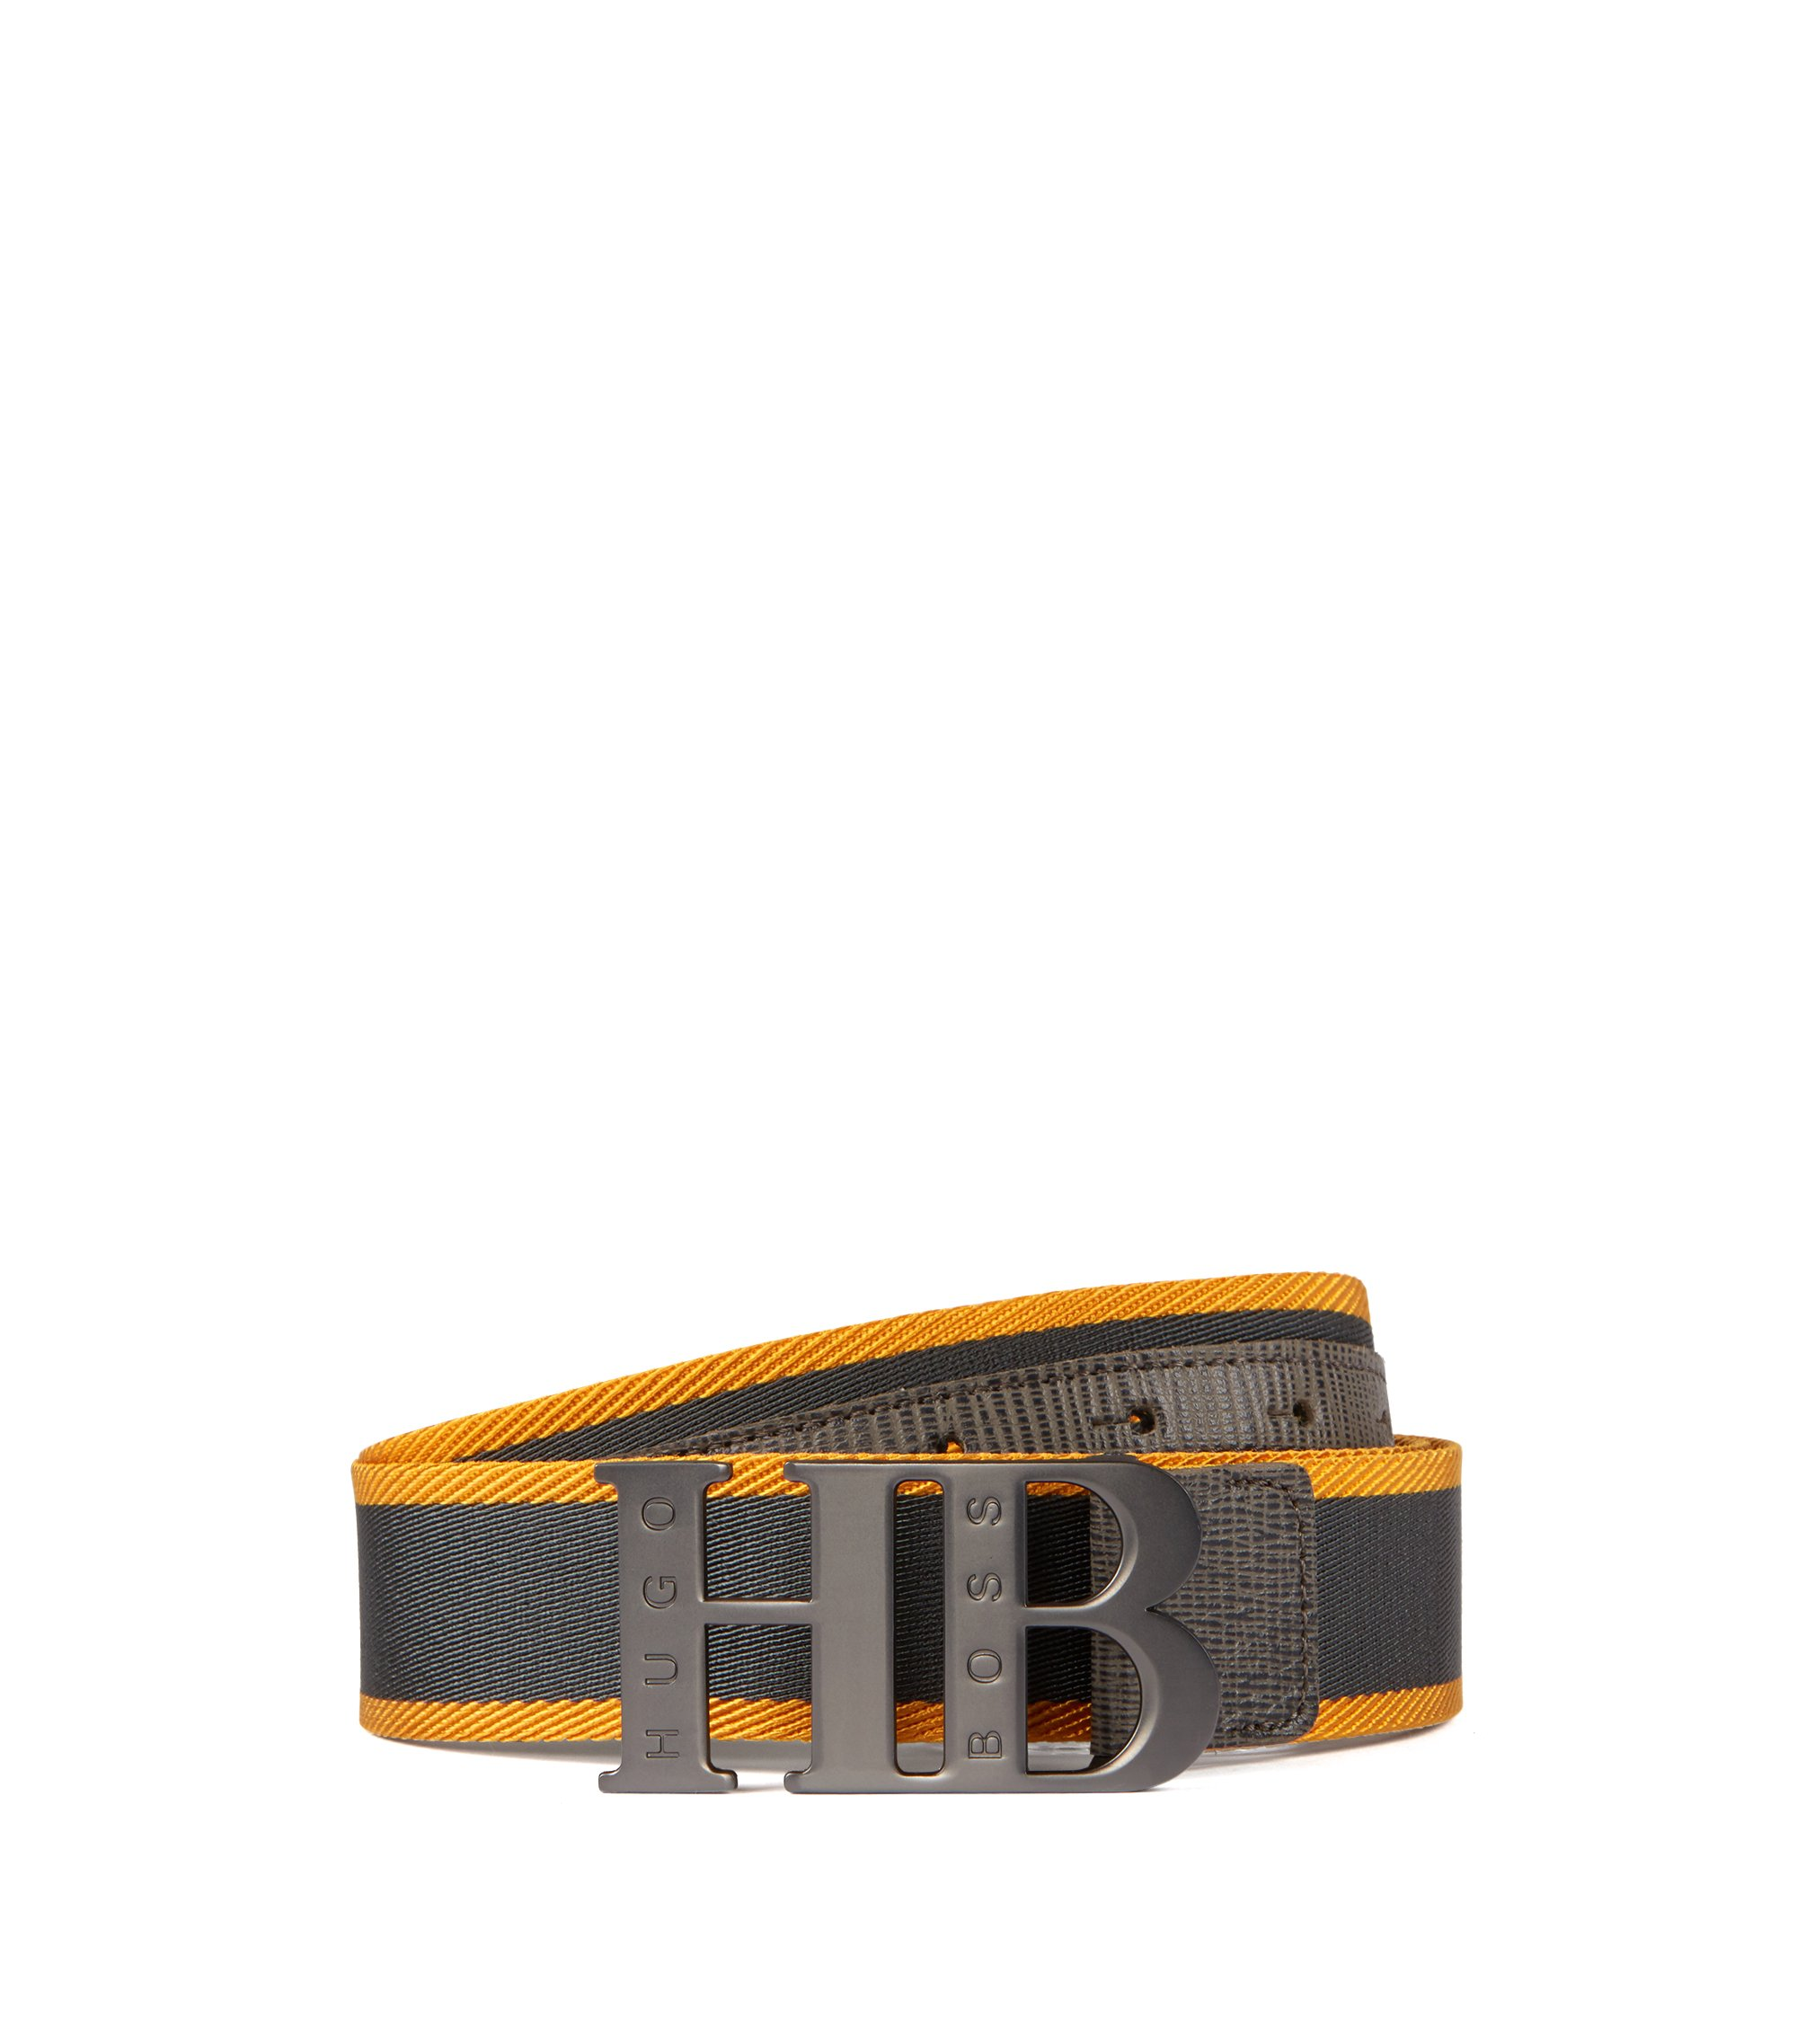 Woven belt with leather trim and branded plaque, Dark GreyDark Grey